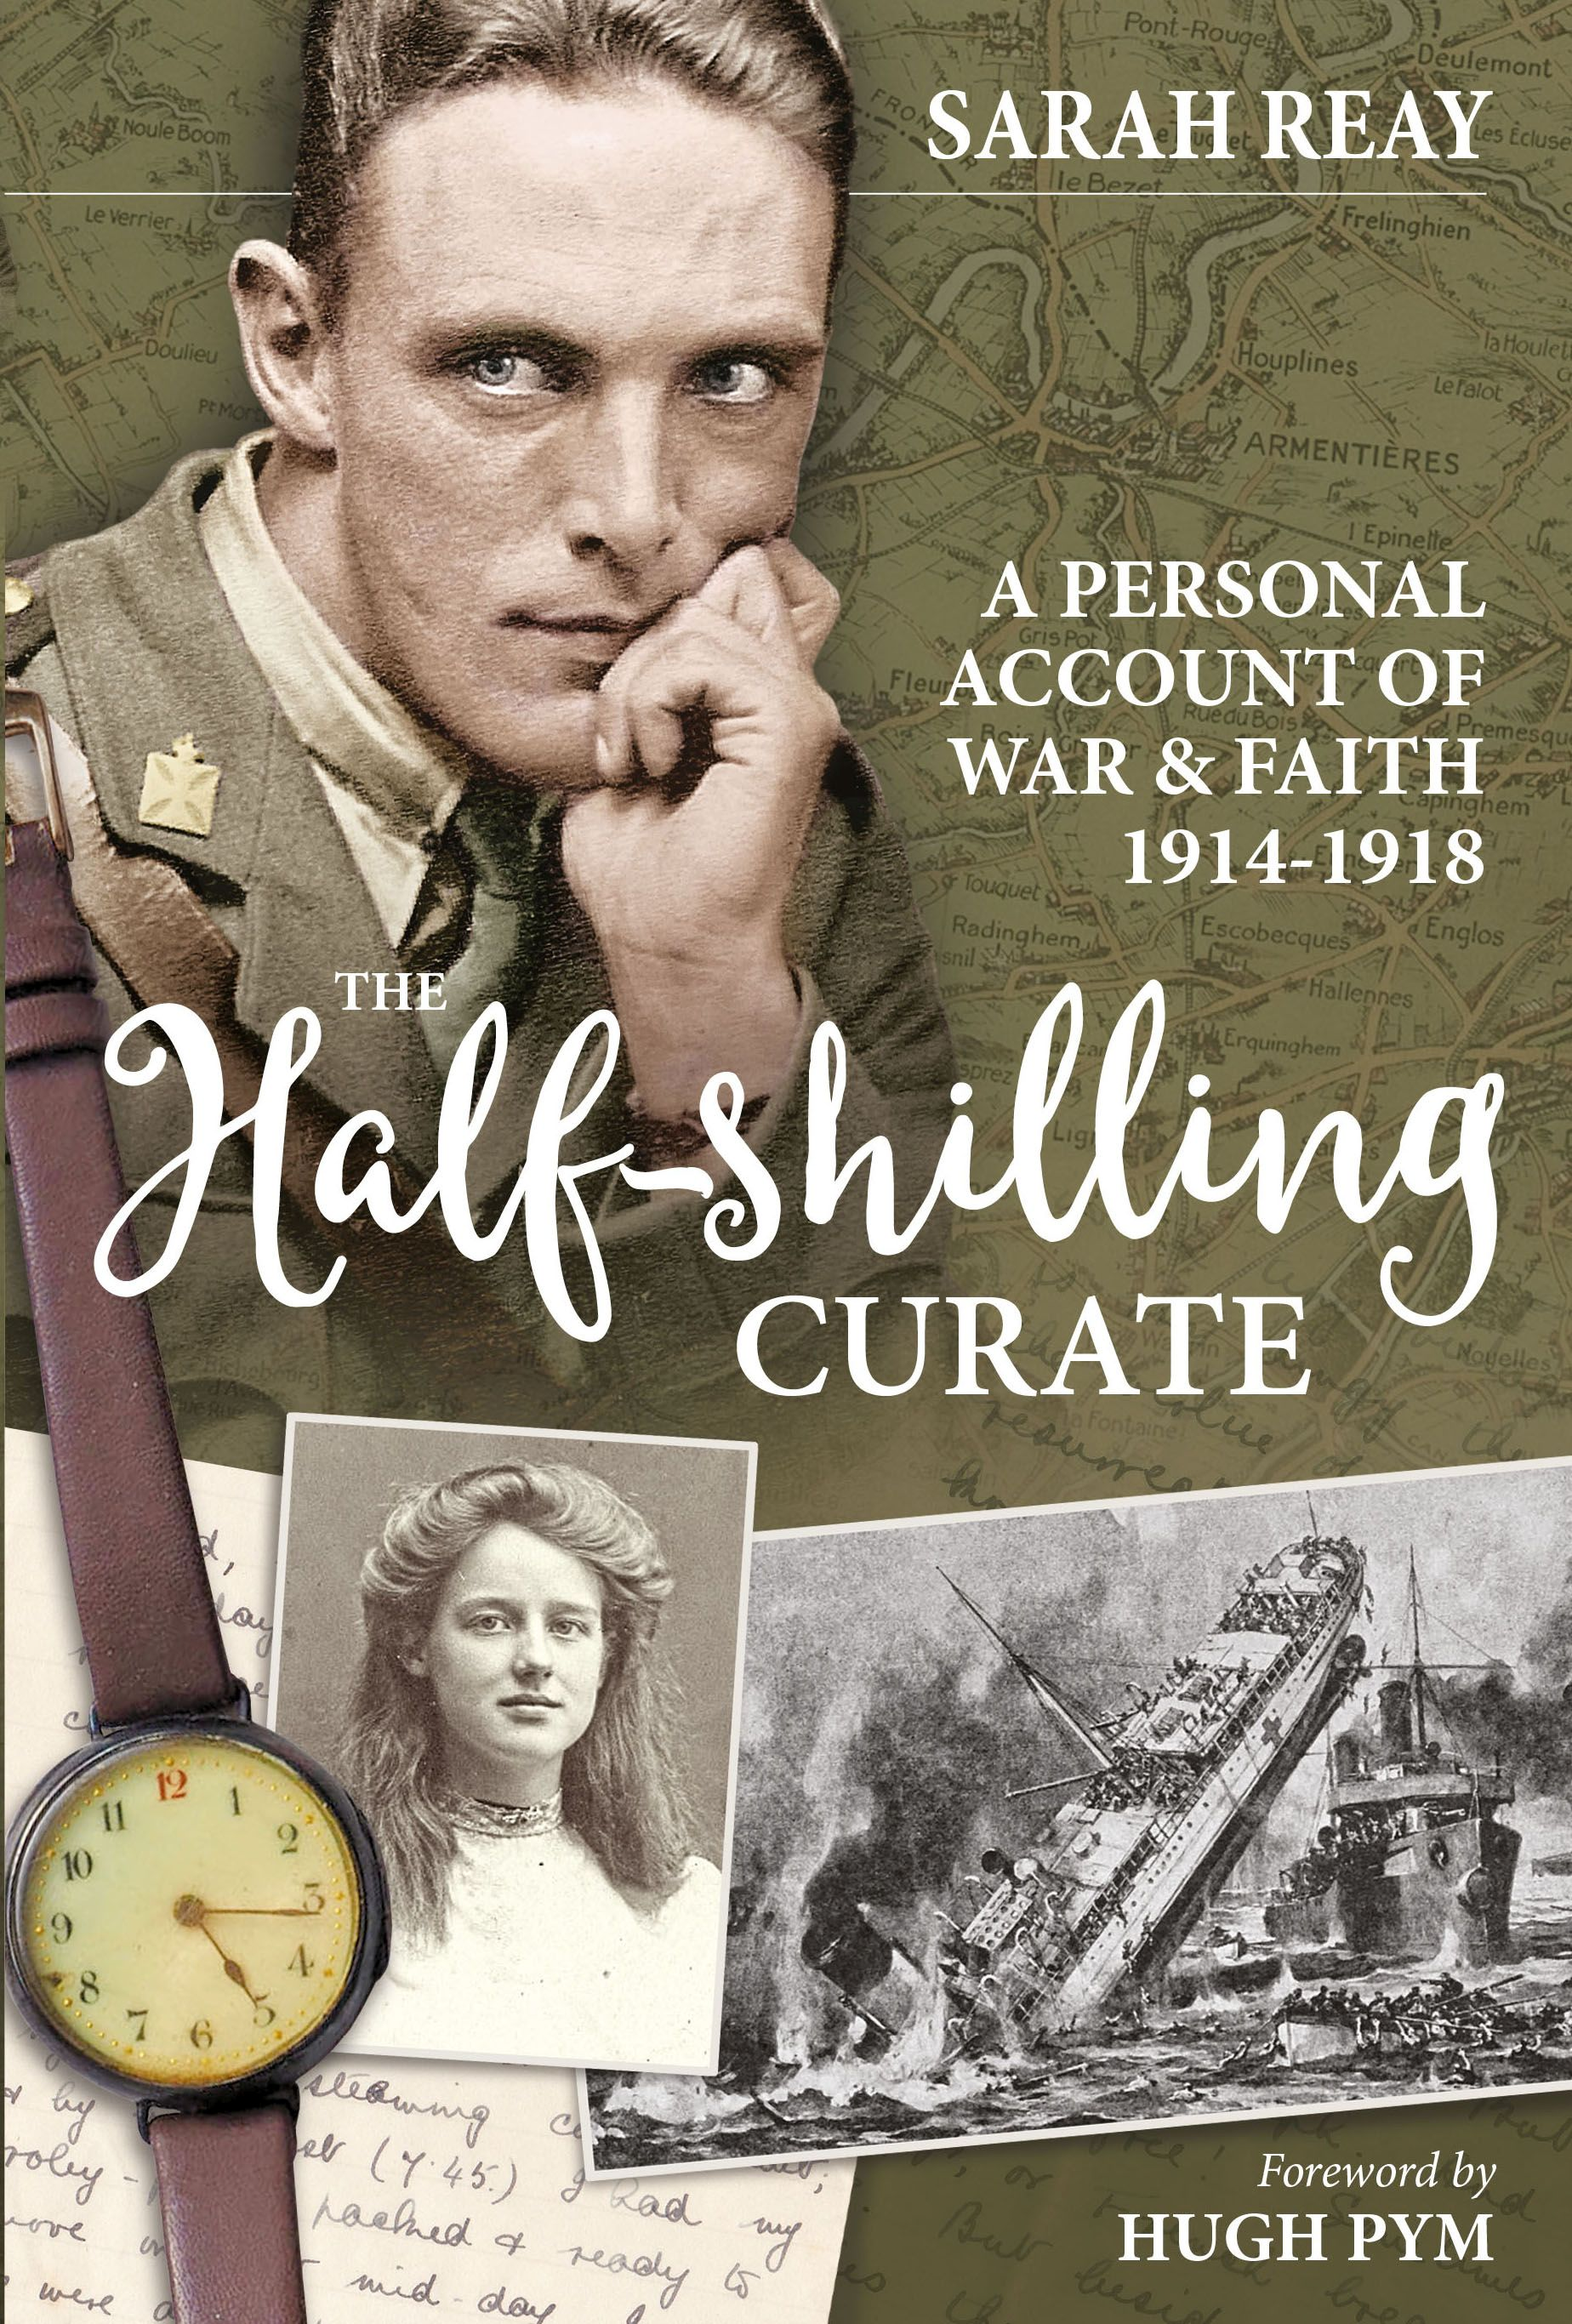 The Half Shilling Curate